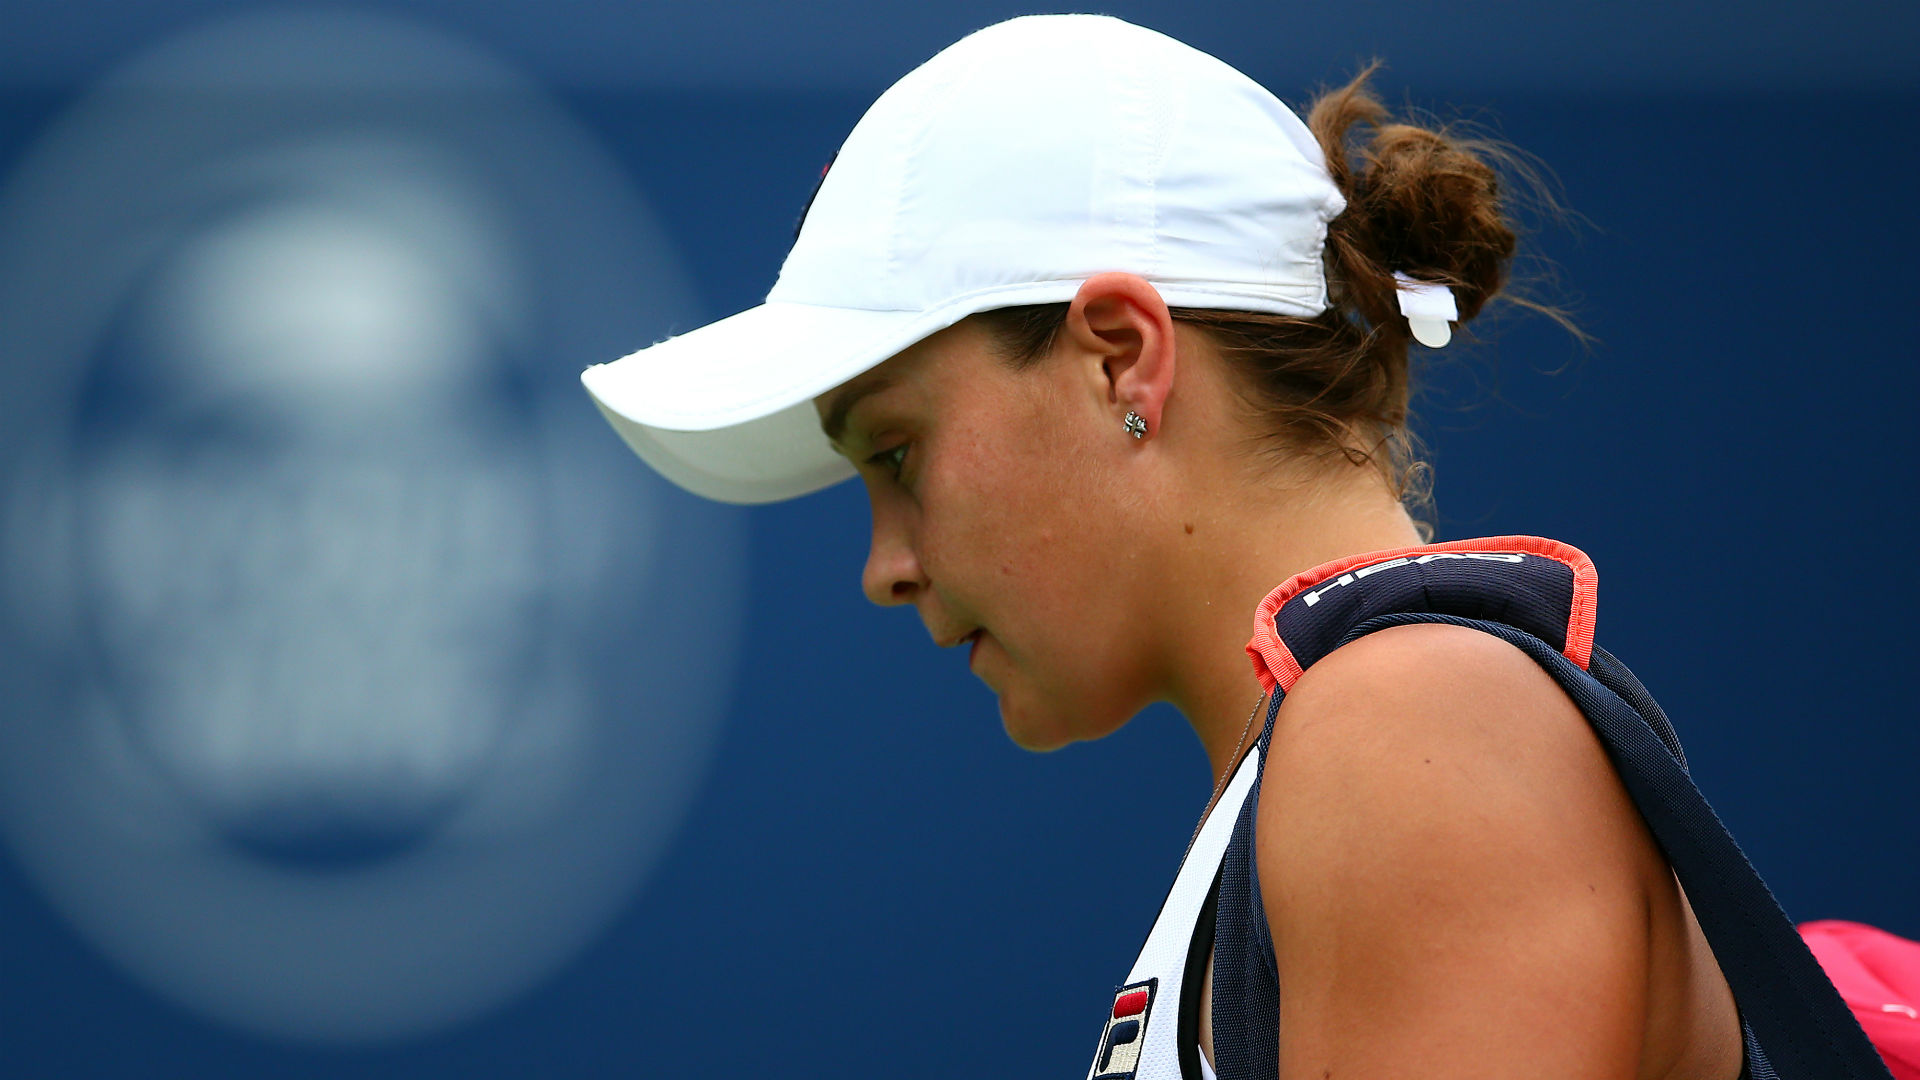 Ash Barty could lose number one WTA ranking after surprise Rogers Cup loss to Sofia Kenin